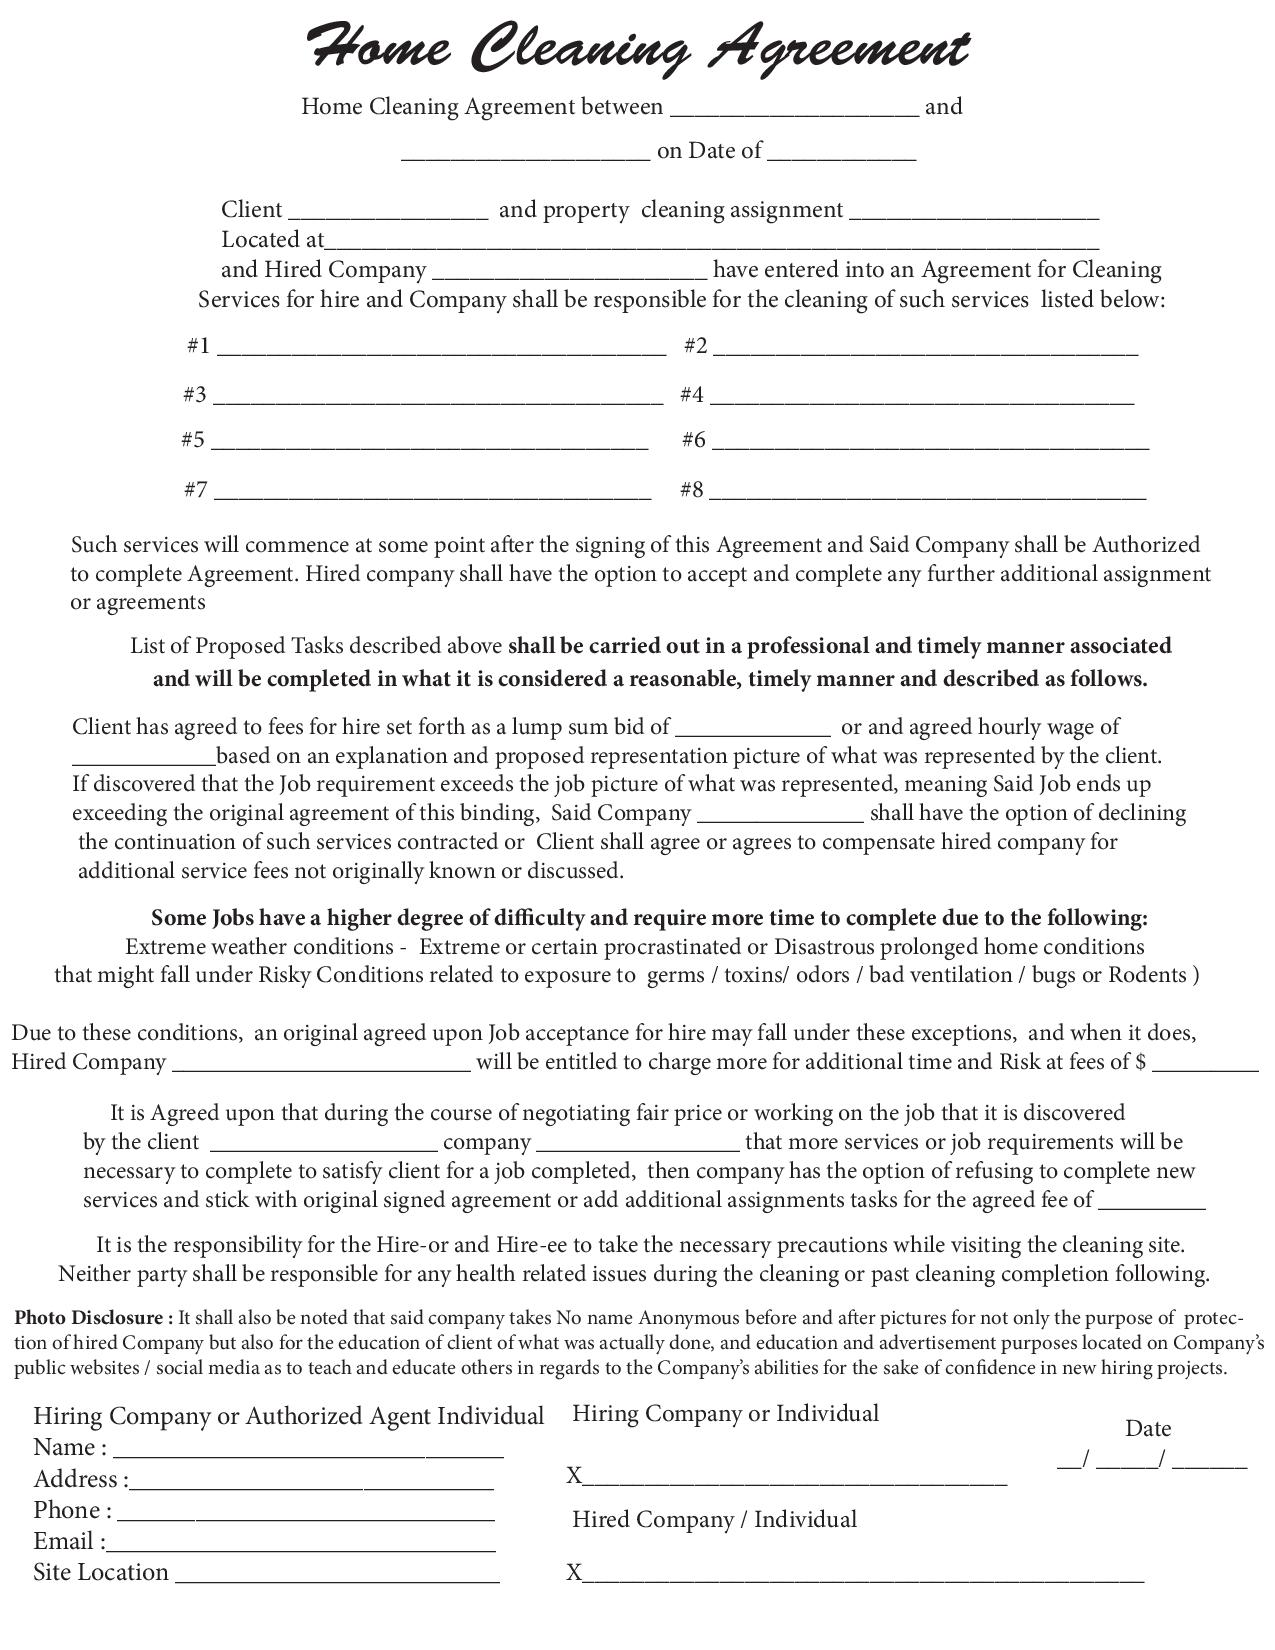 invoice agreement invoice emailed to you